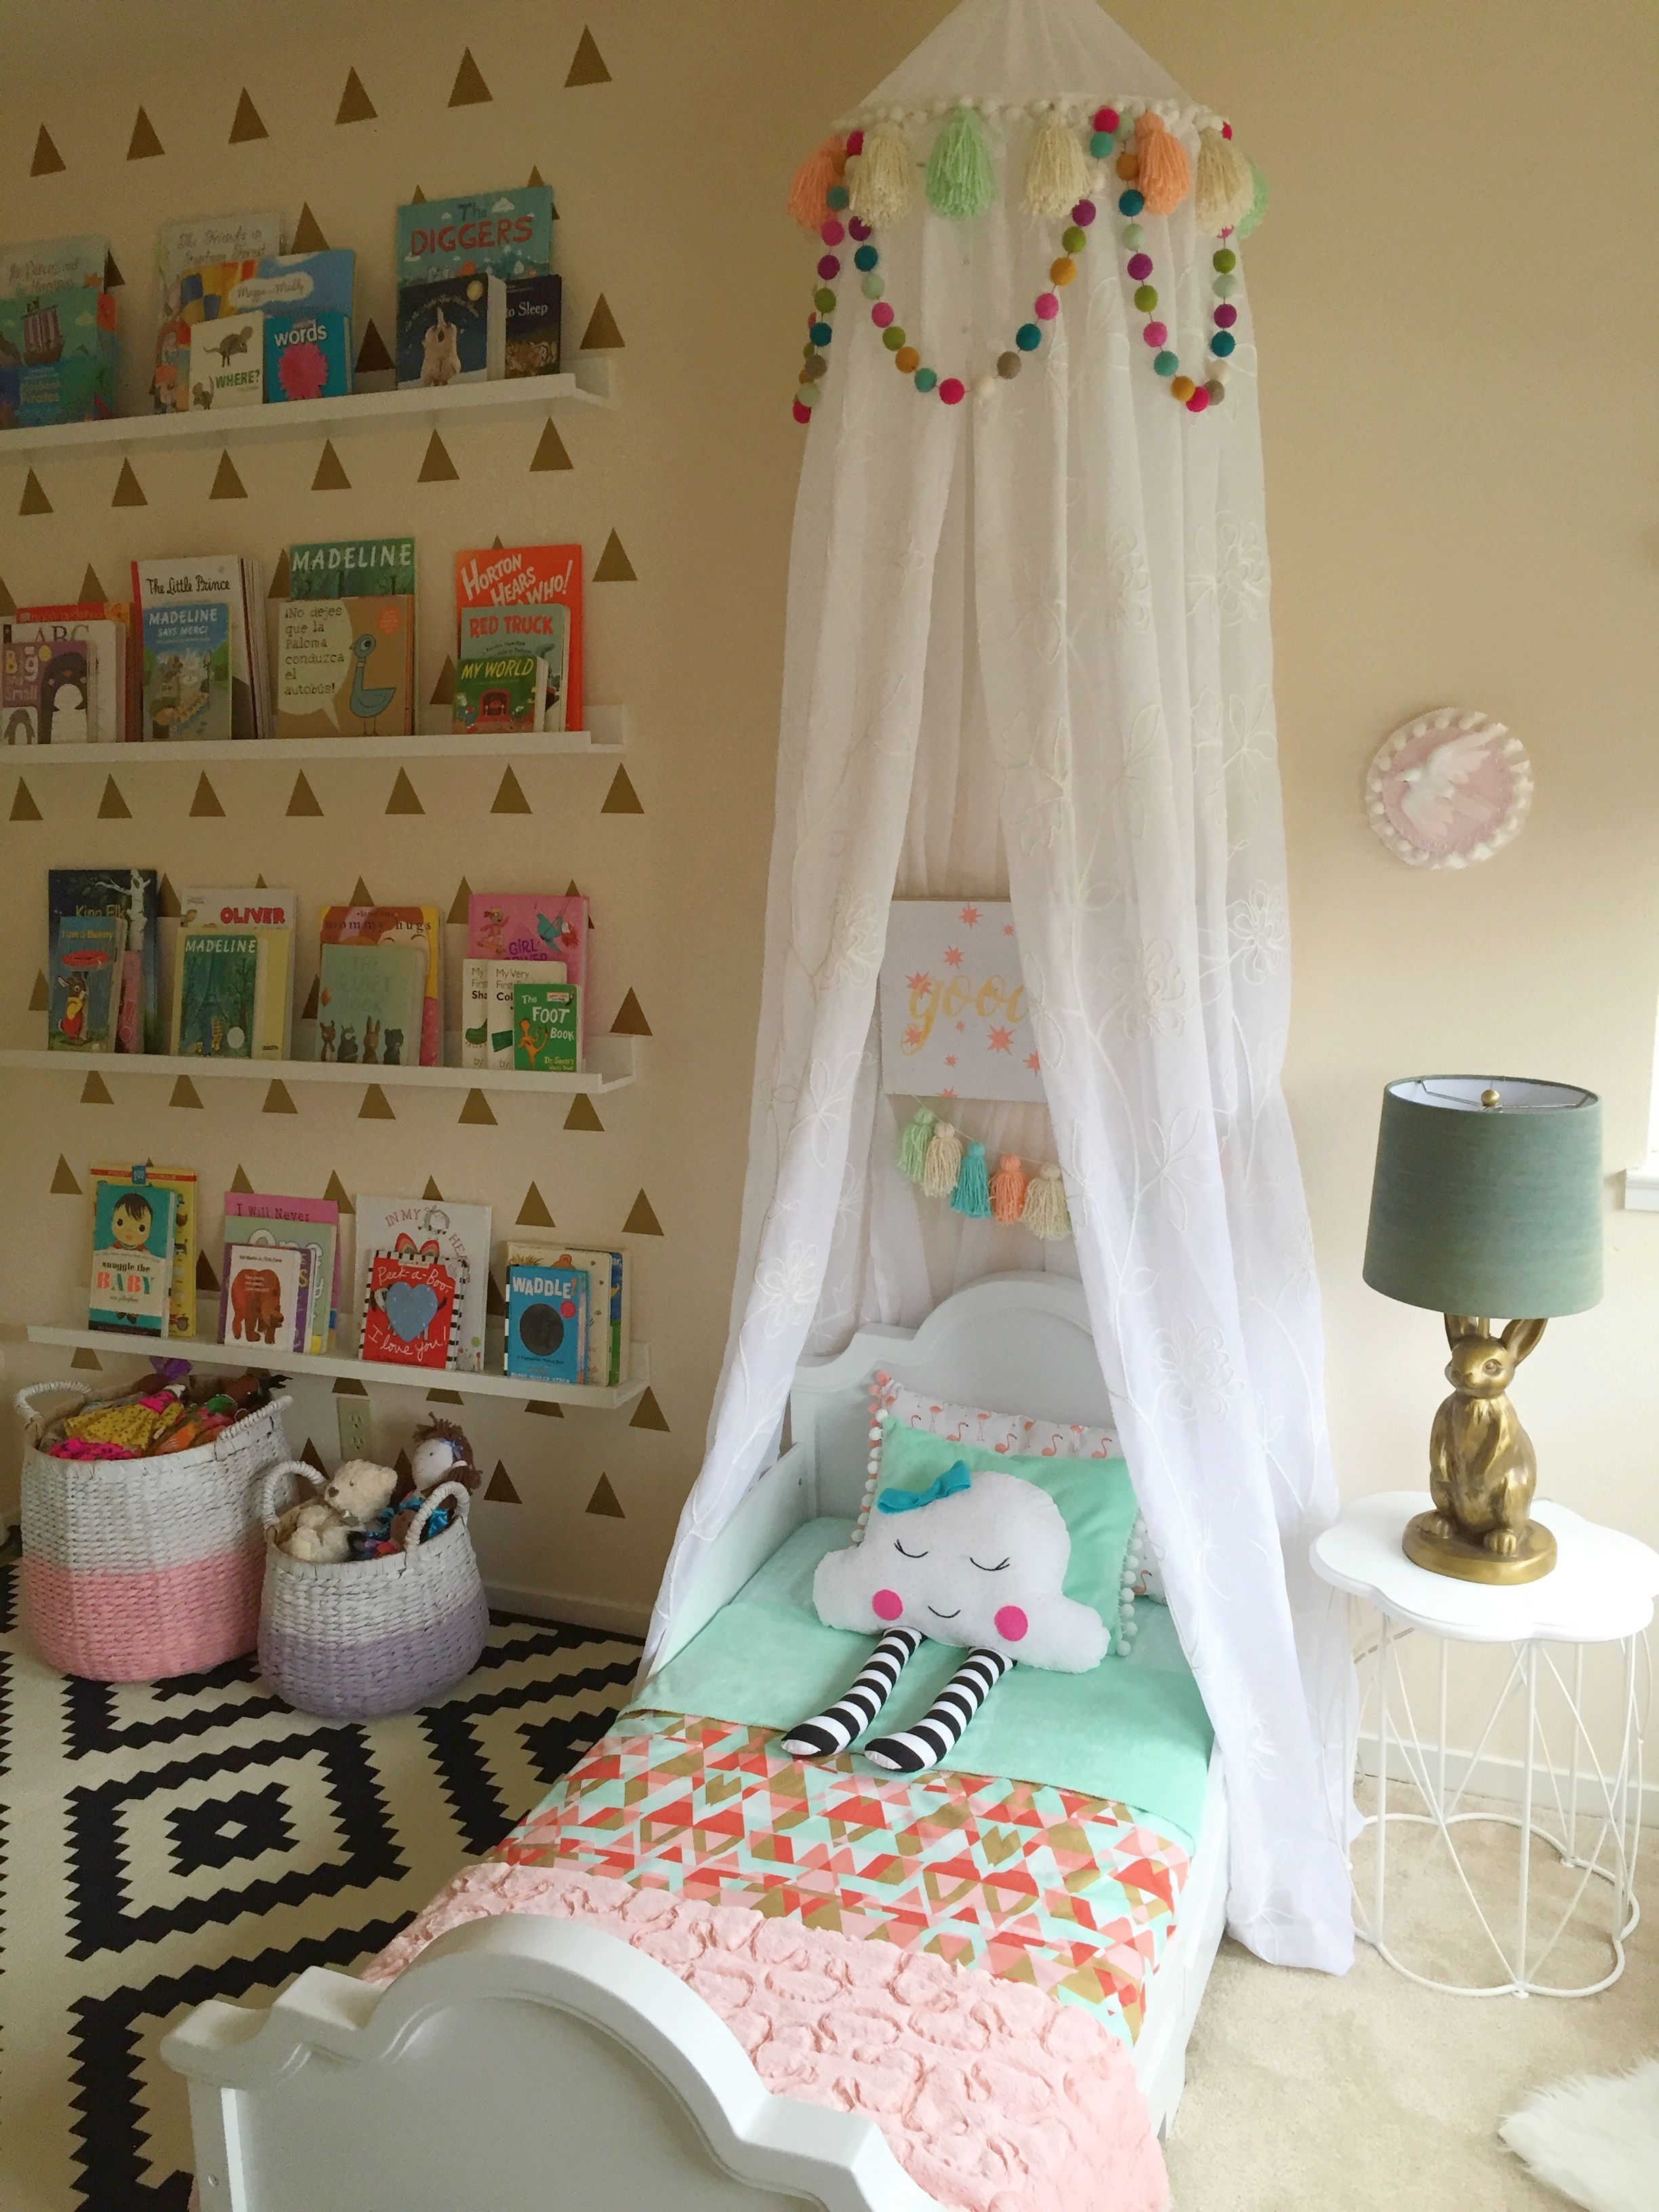 Amelia S Room Toddler Bedroom: Interior Design By Maya Ostrander. Bed Canopy, Cloud